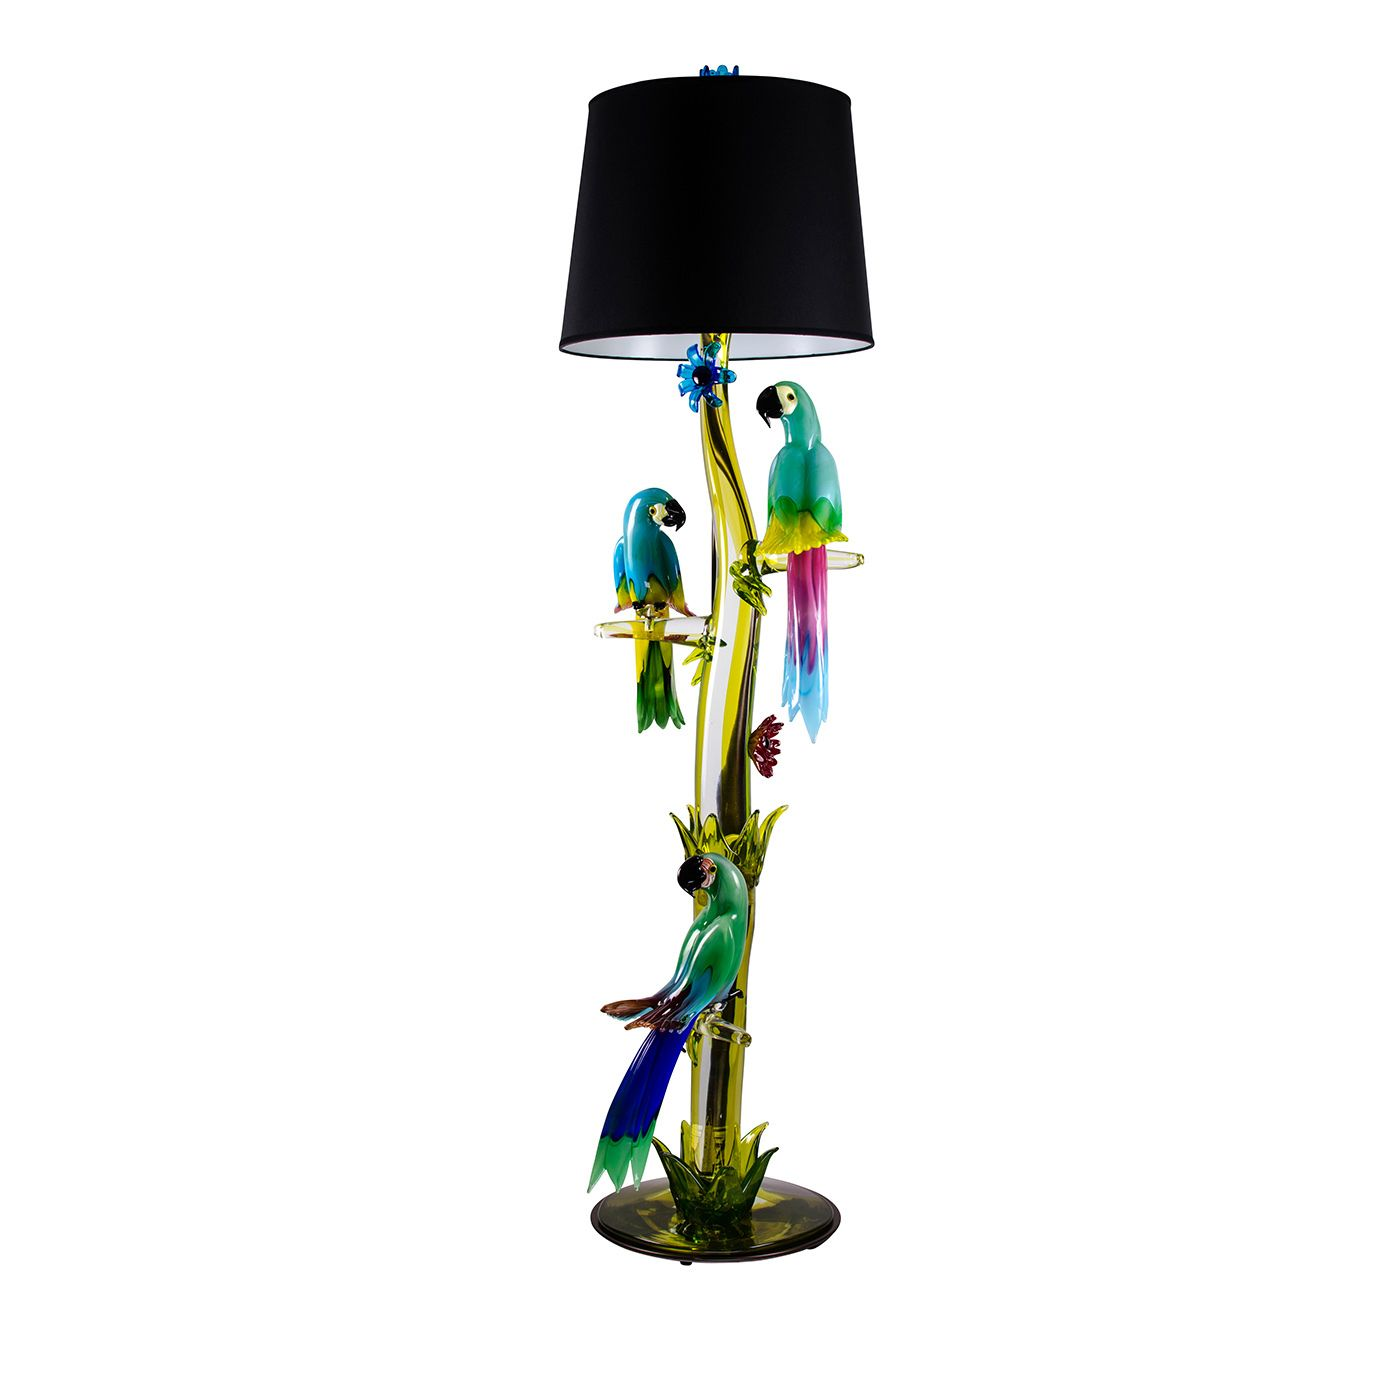 Murano Glass Parrot Floor Lamp   Shop Timeless Lighting Handcrafted In  Italy: Chandeliers, Pendant Lamps, Table Lamps And Appliques   Home Décor  And ...